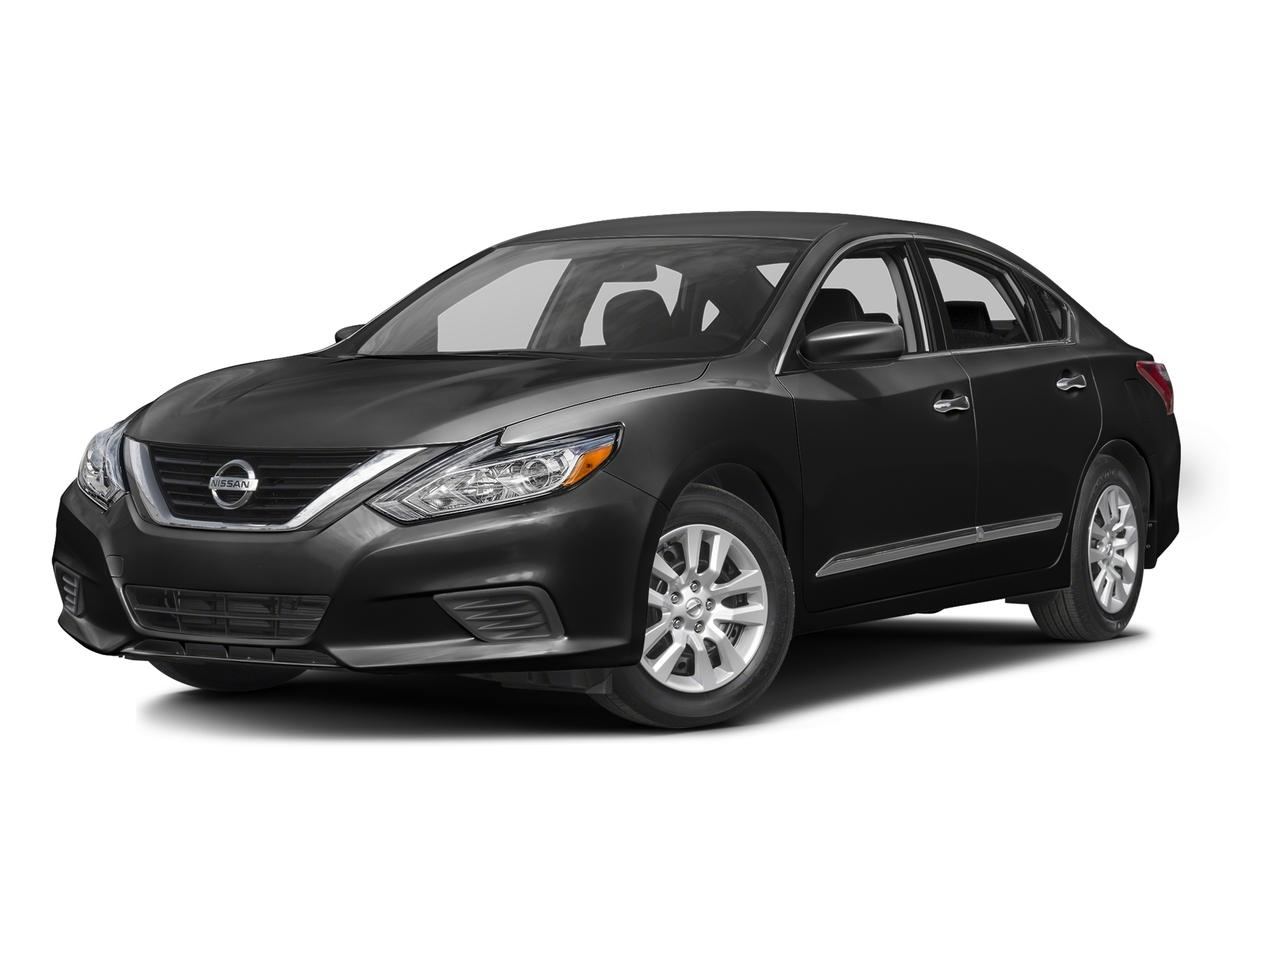 2016 Nissan Altima Vehicle Photo in TEMPLE, TX 76504-3447